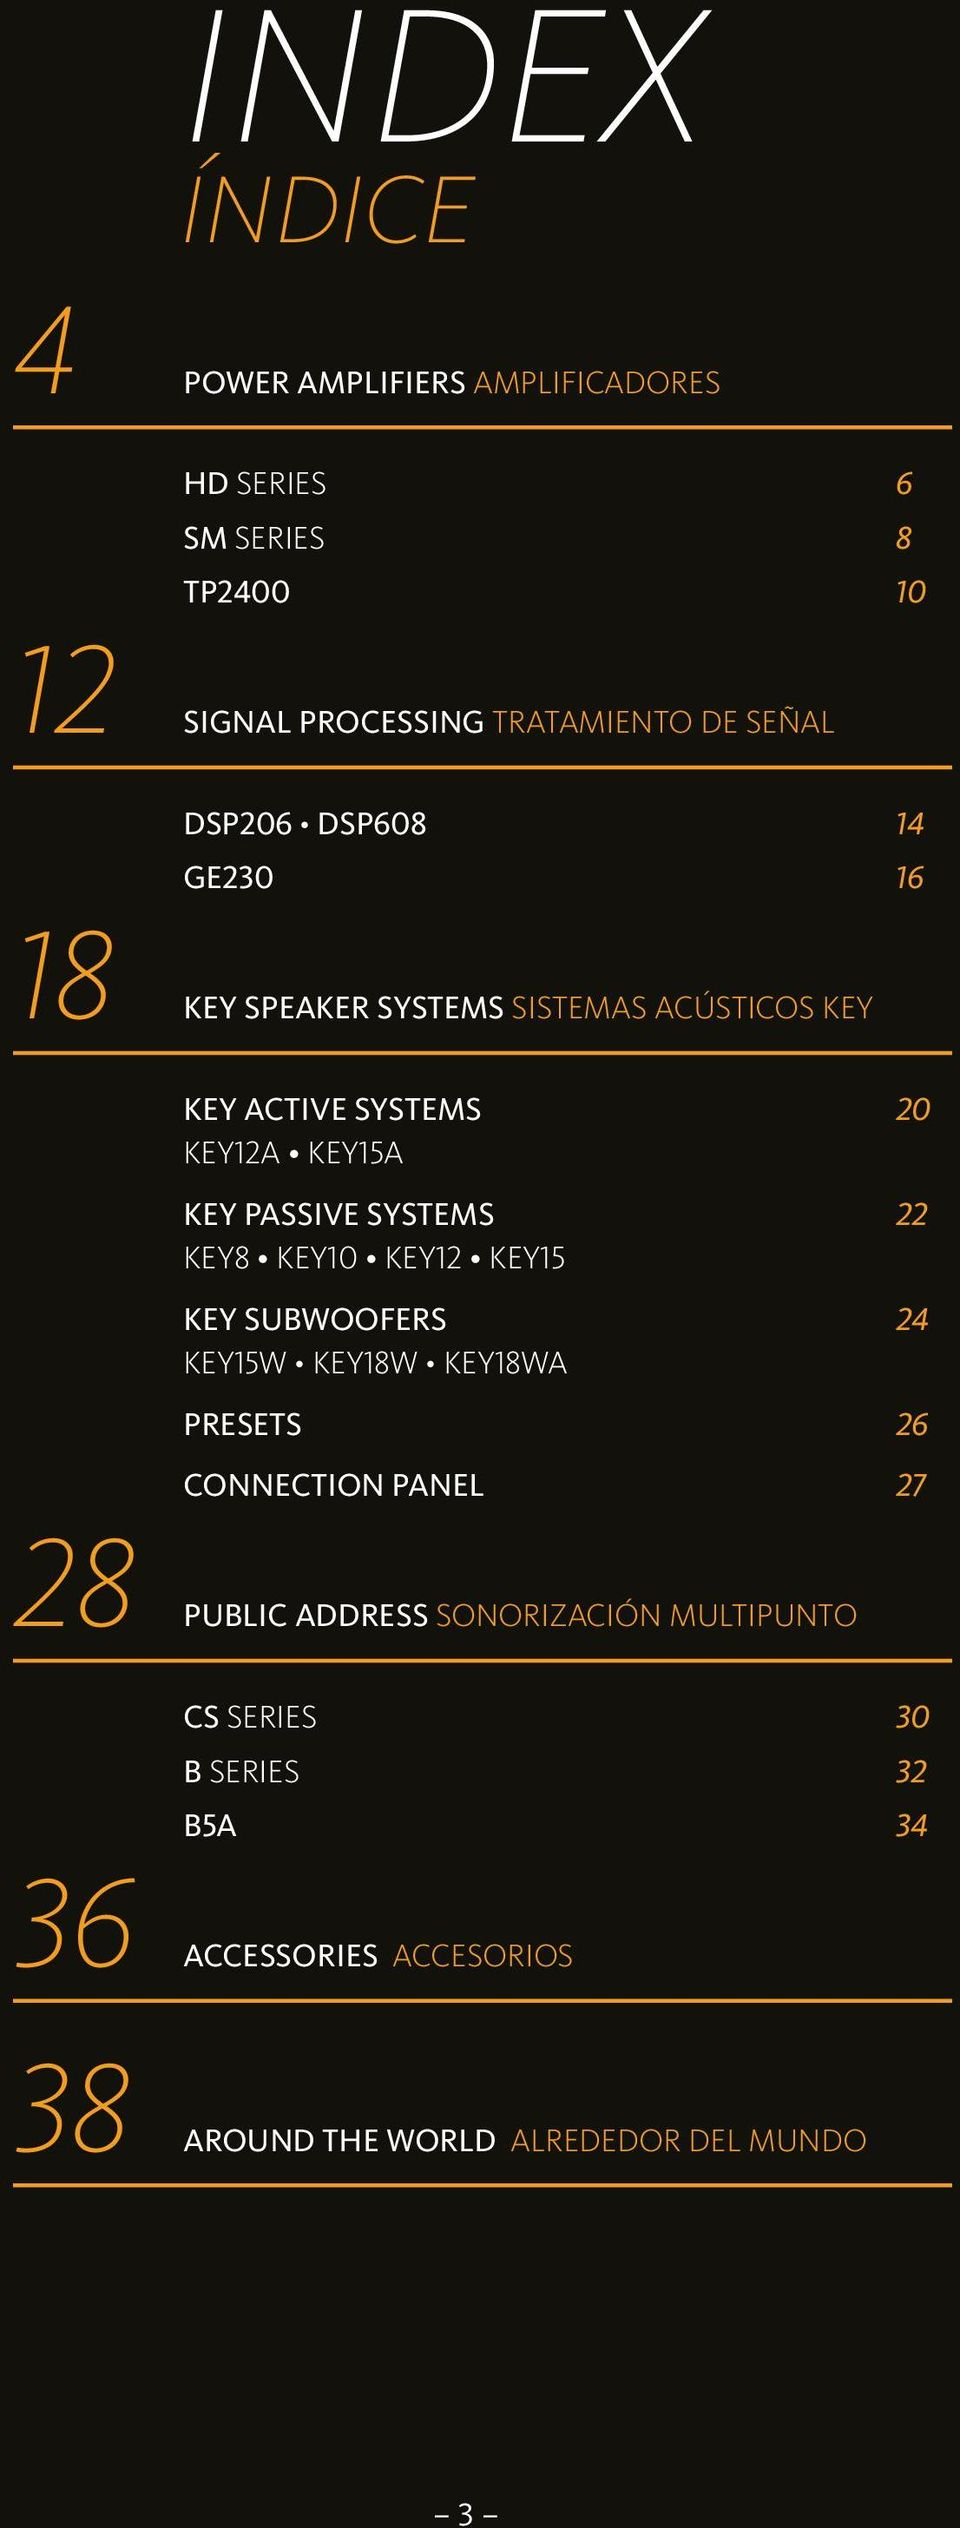 SYSTEMS 22 KEY8 KEY10 KEY12 KEY15 KEY SUBWOOFERS 24 KEY15W KEY18W KEY18WA PRESETS 26 28 PUBLIC 36 ACCESSORIES 38 AROUND